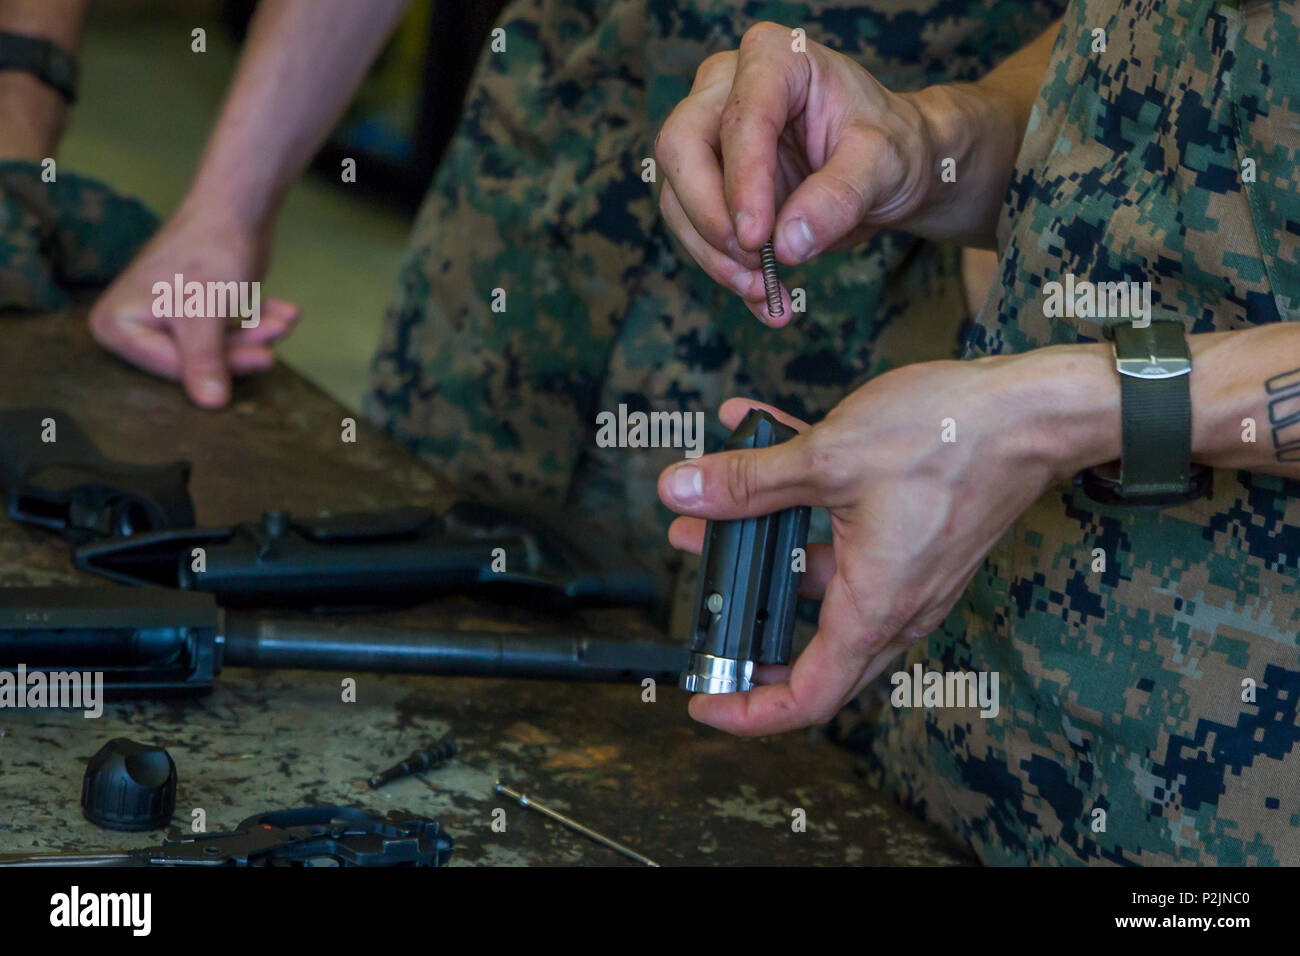 Integrated Training Exercise Stock Photos & Integrated